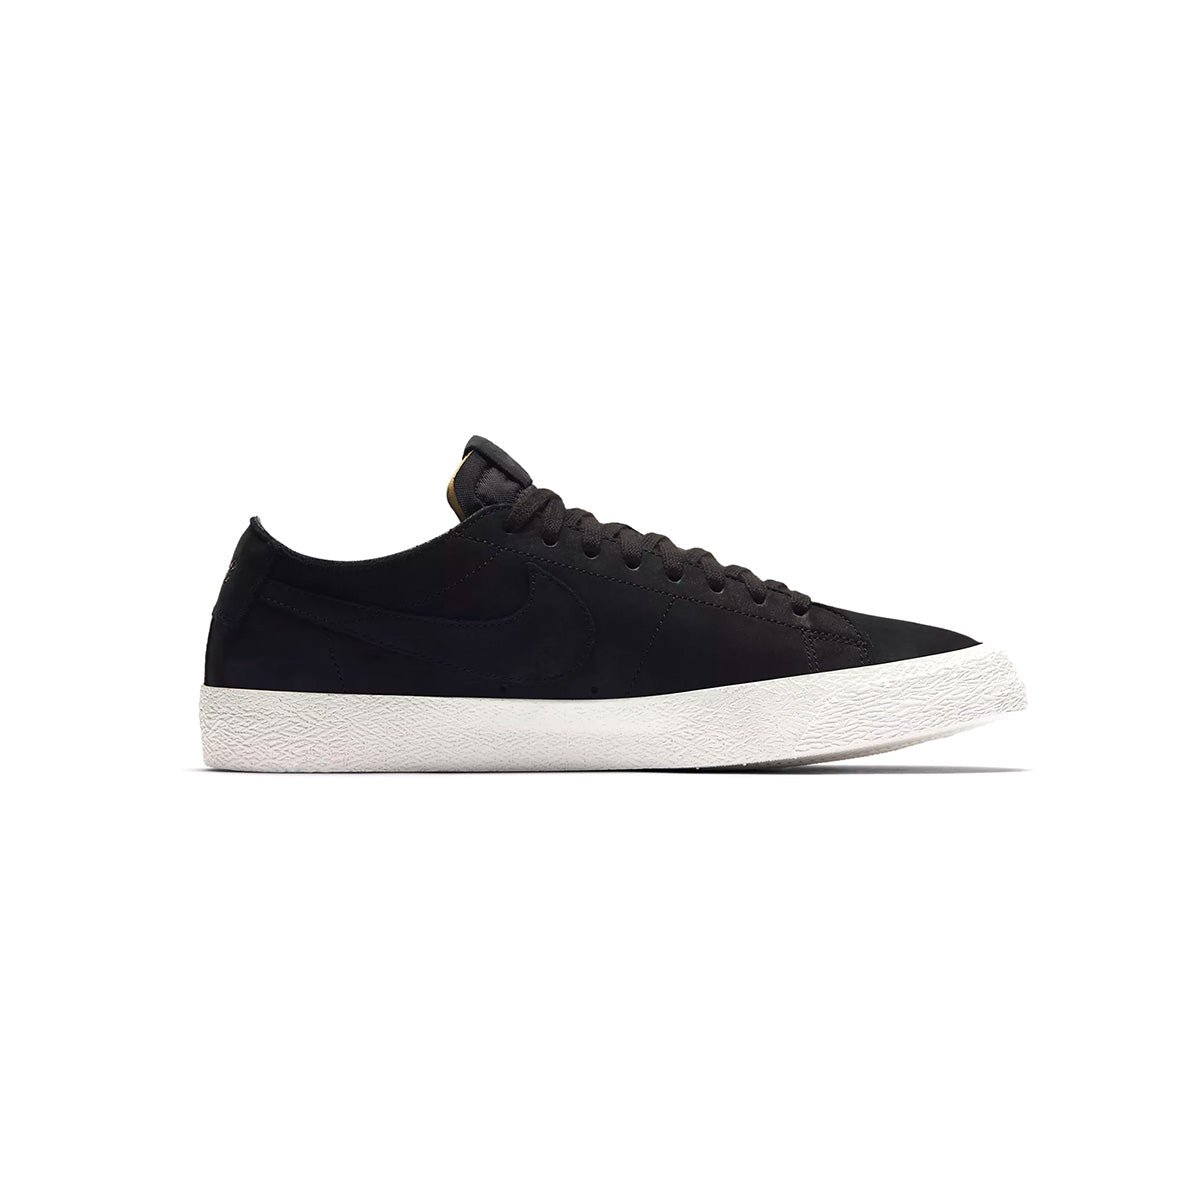 Nike SB Zoom Blazer Low Deconstructed Black Anthracite Black AA4274002